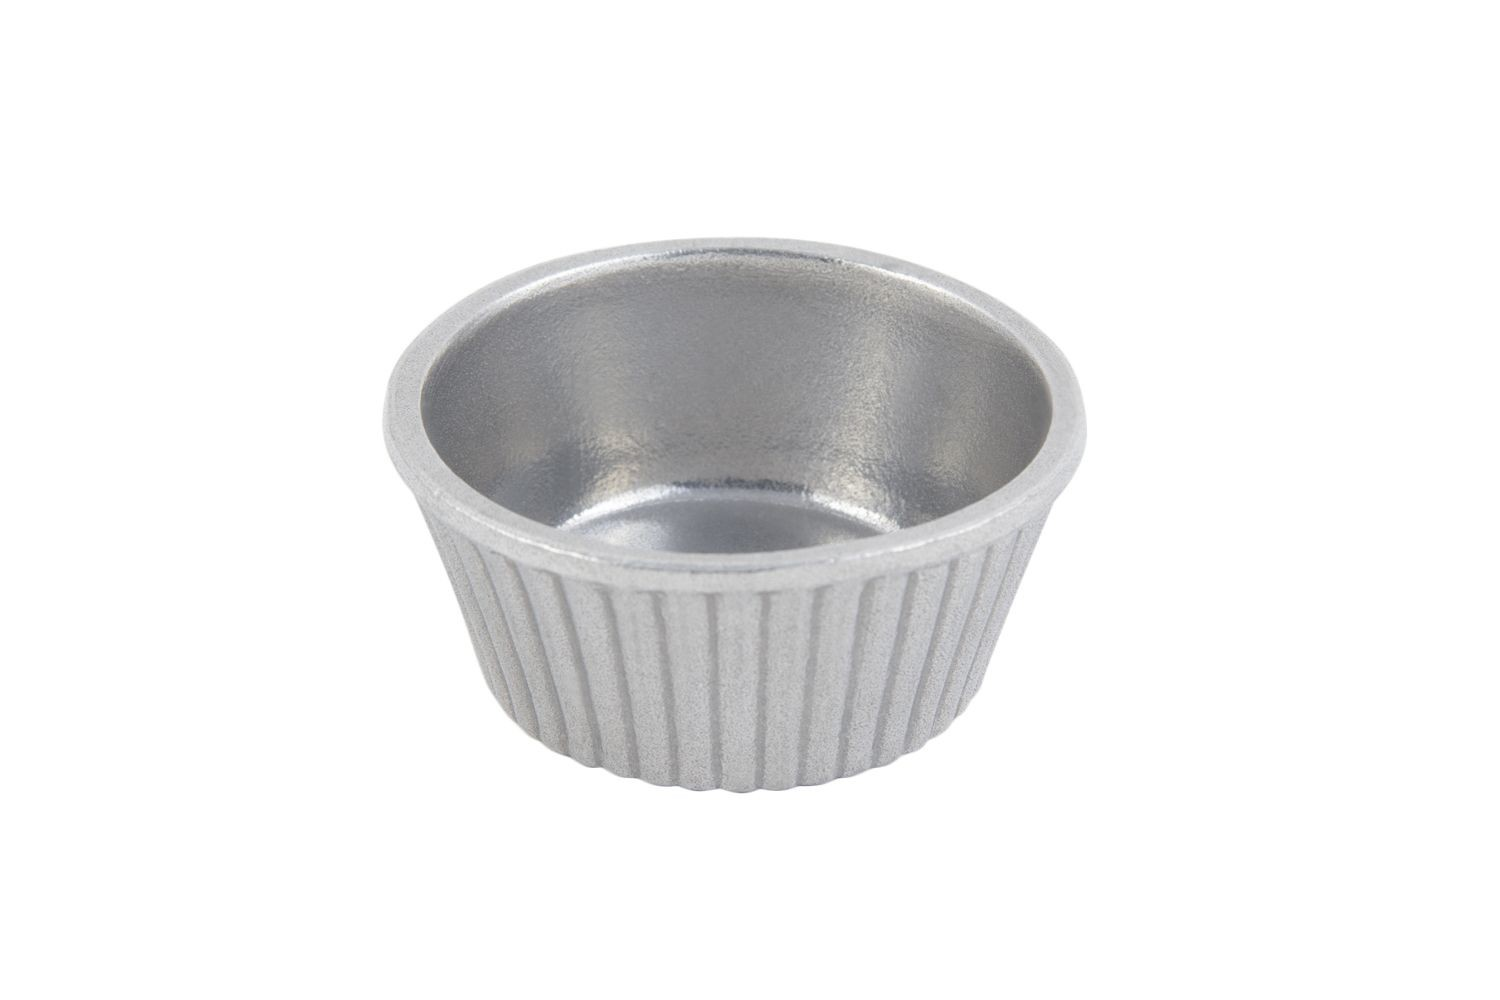 Bon Chef 9027P Fluted Ramekin, Pewter Glo 4 oz., Set of 24